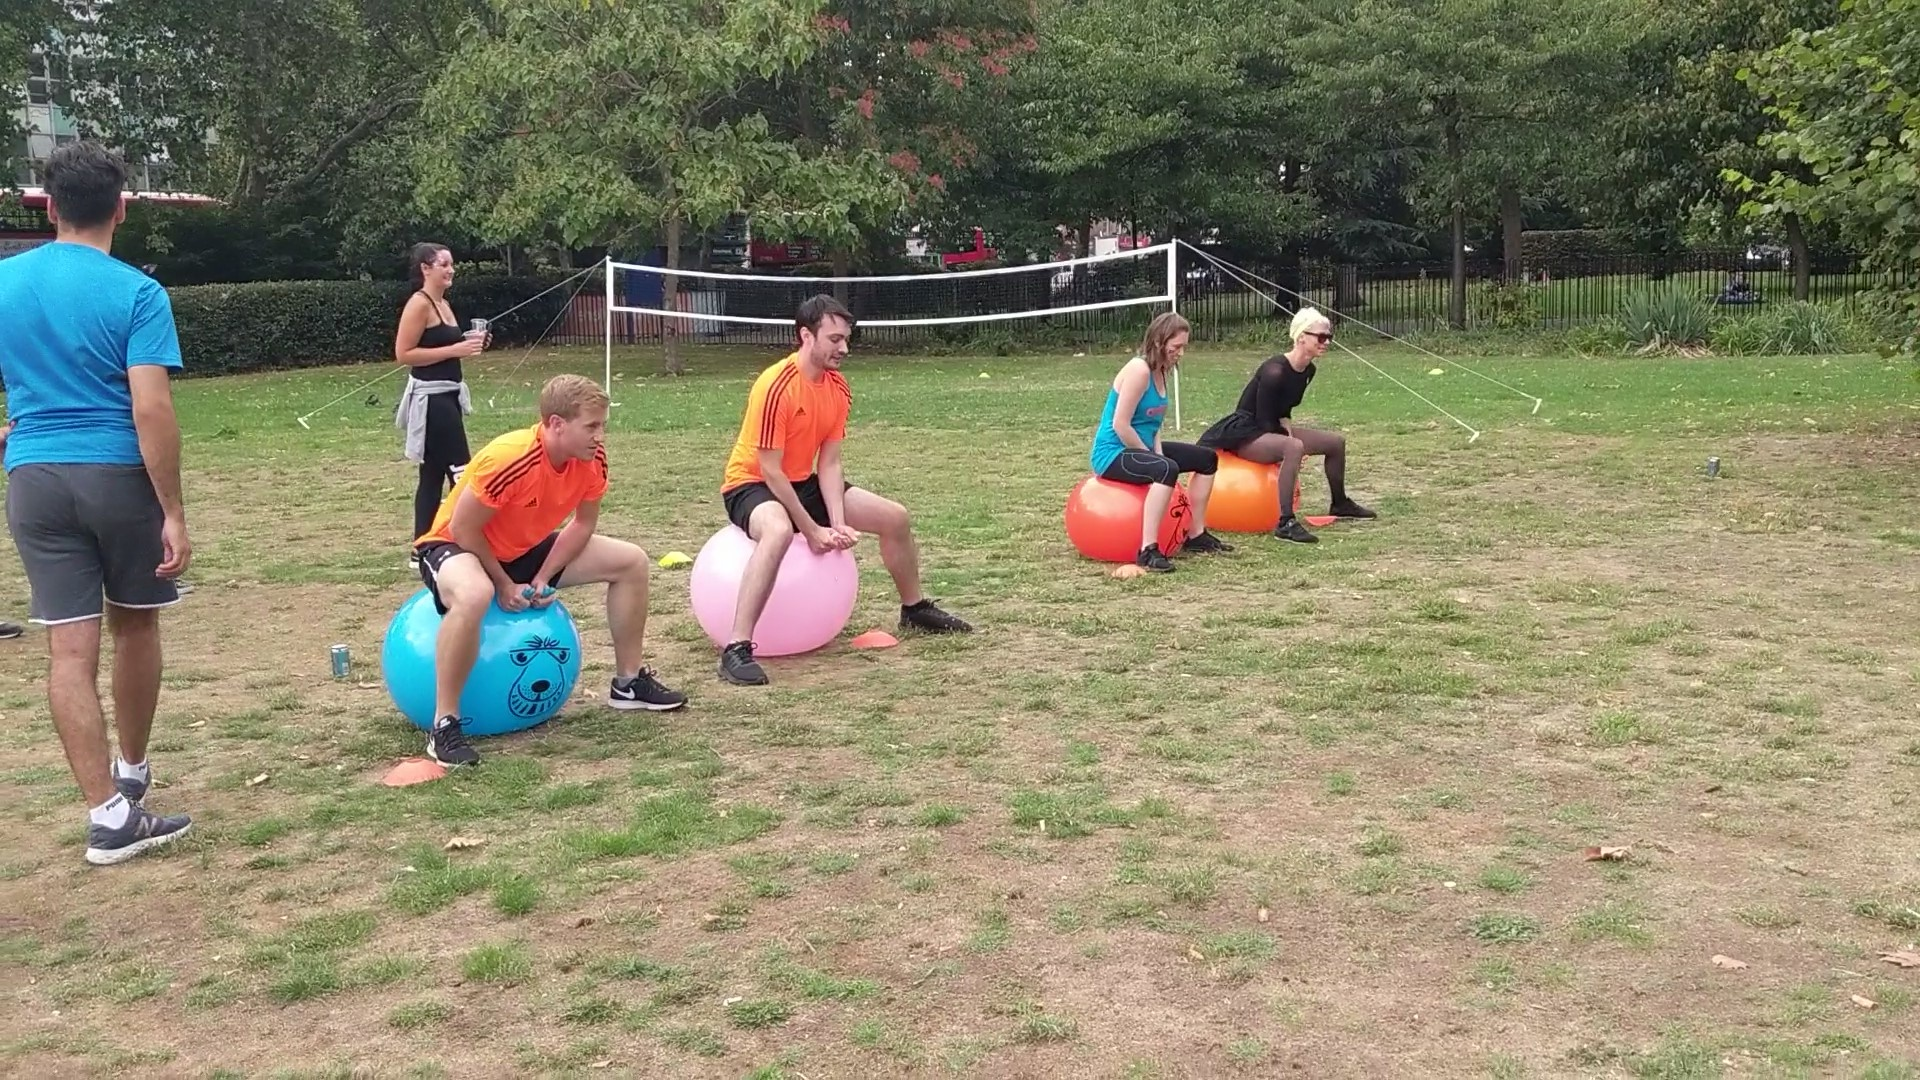 spacehopper